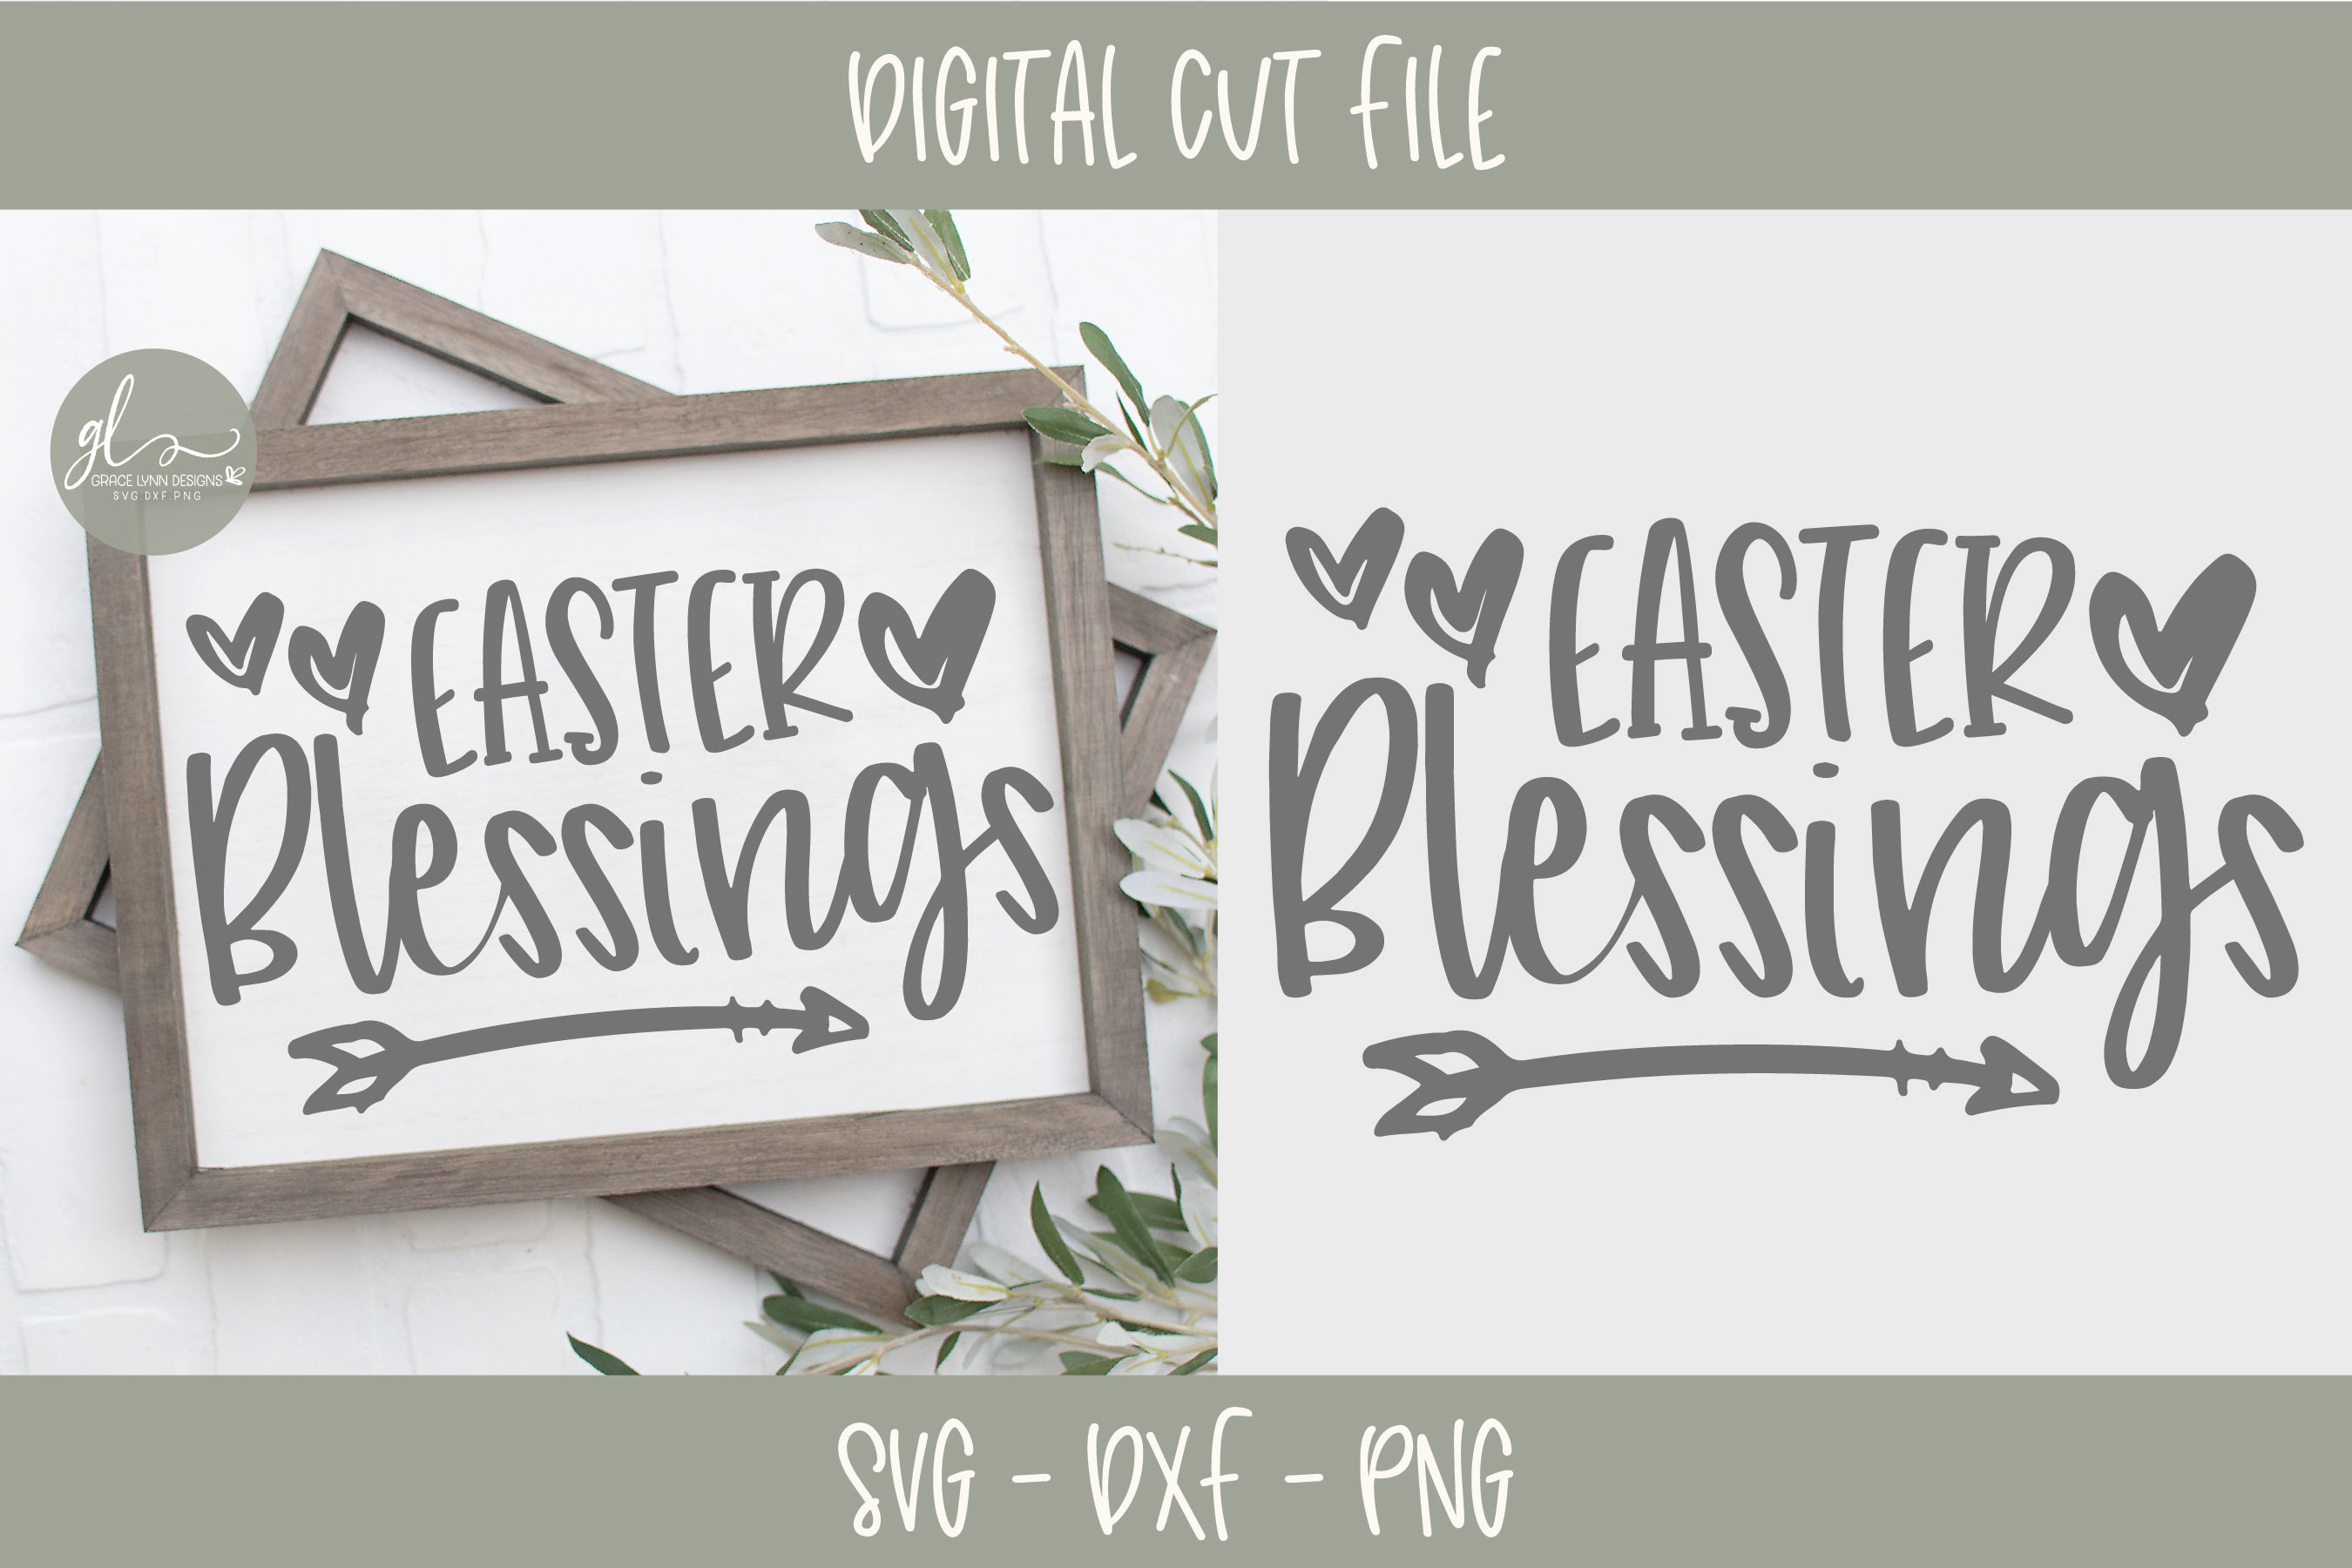 Easter Blessings - SVG Cut File example image 1